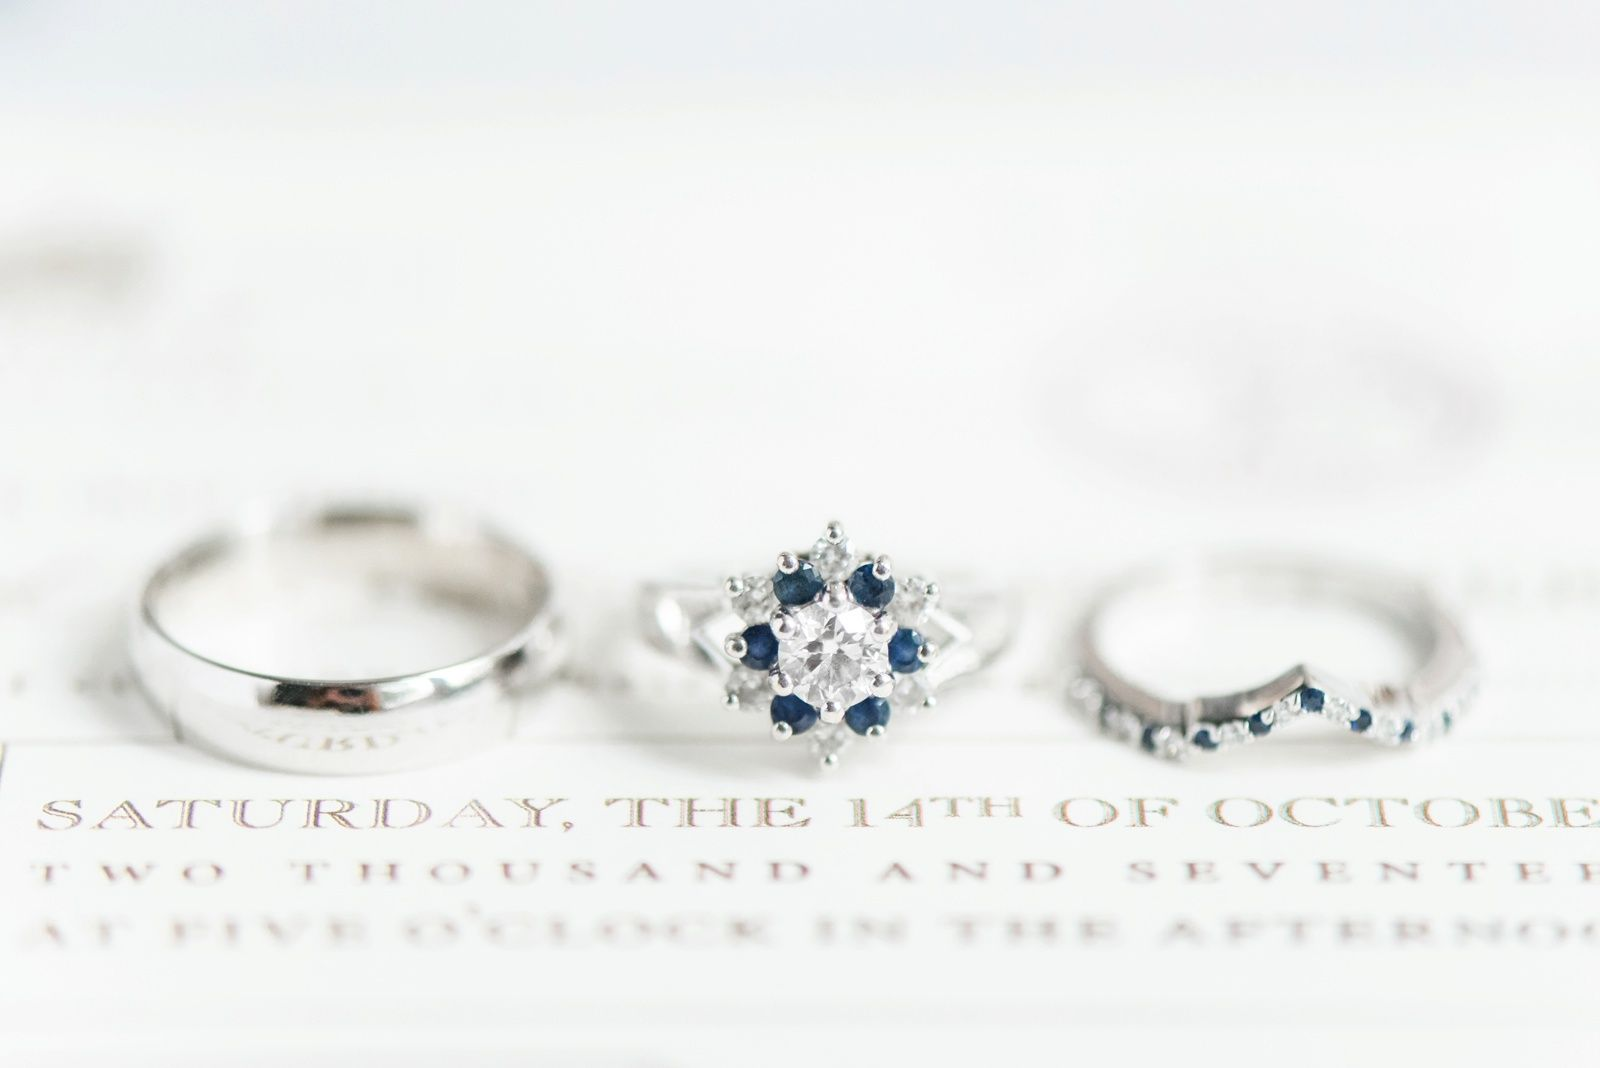 Adding a touch of blue sapphire to your wedding ring lets the